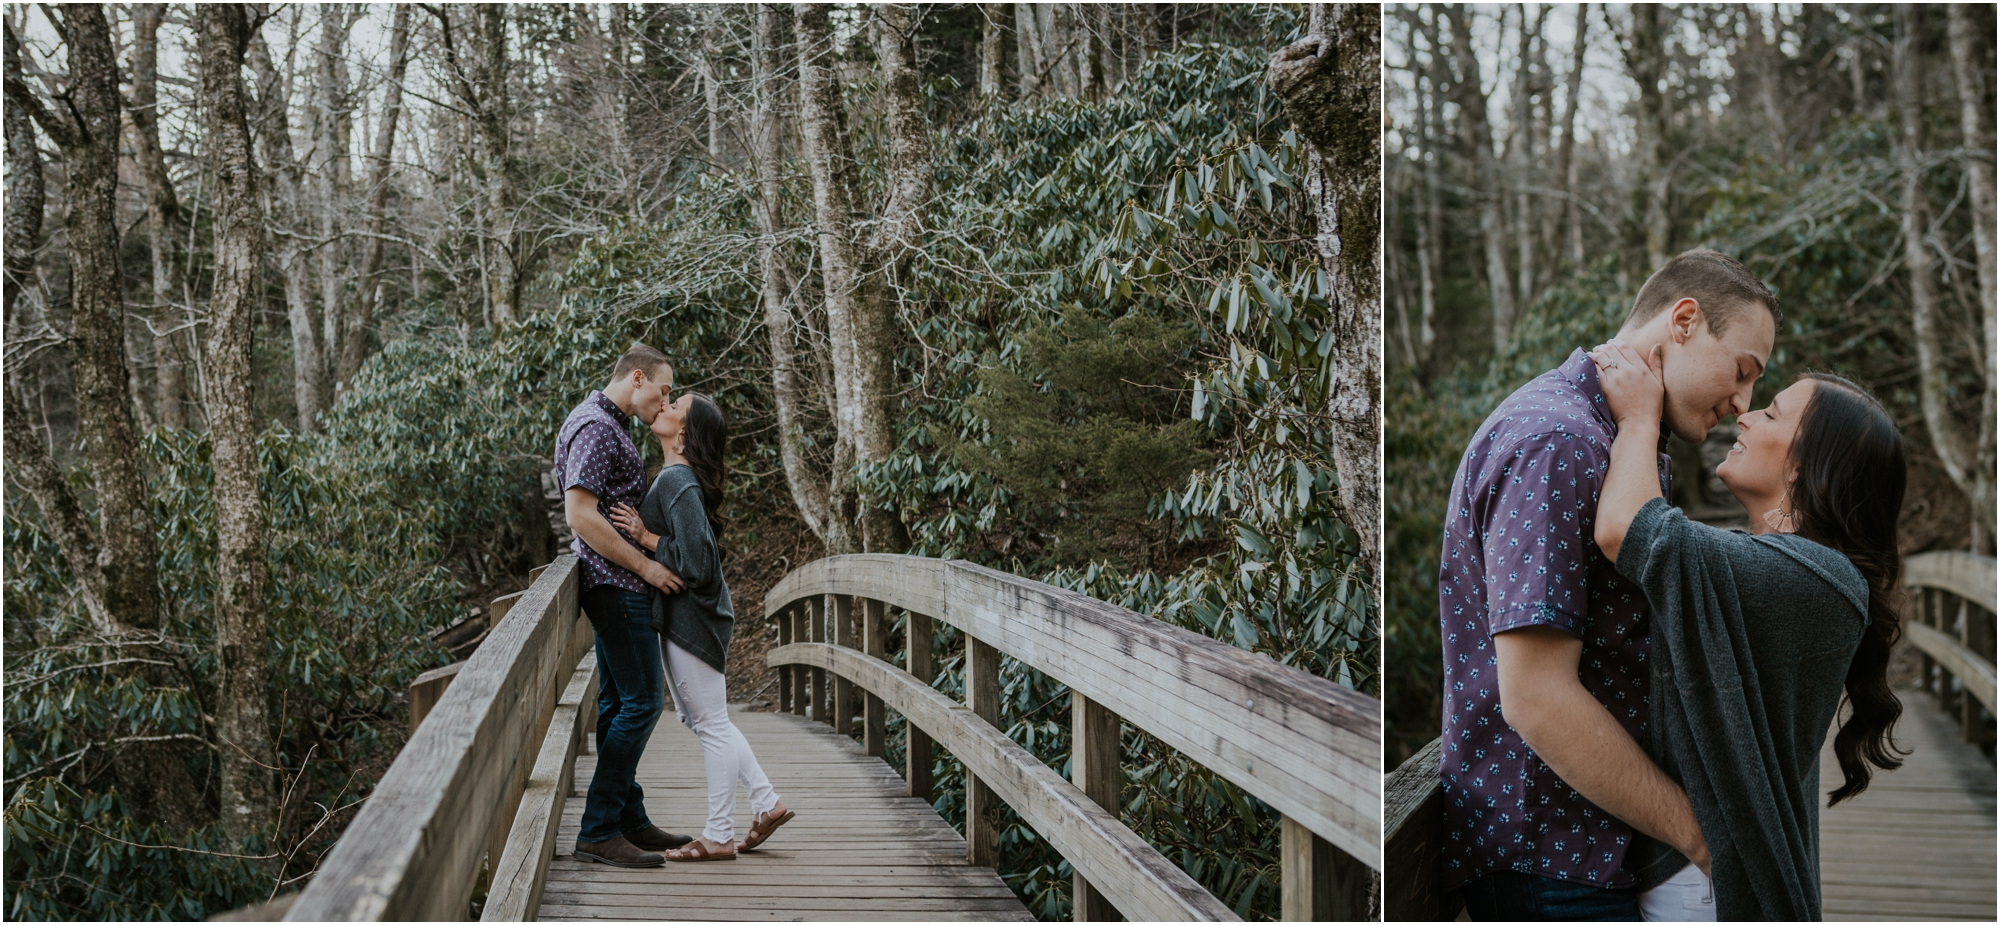 blue-ridge-parkway-engagement-session-north-carolina-boone-blowing-rock-northeast-tennessee-katy-sergent-photography_0003.jpg